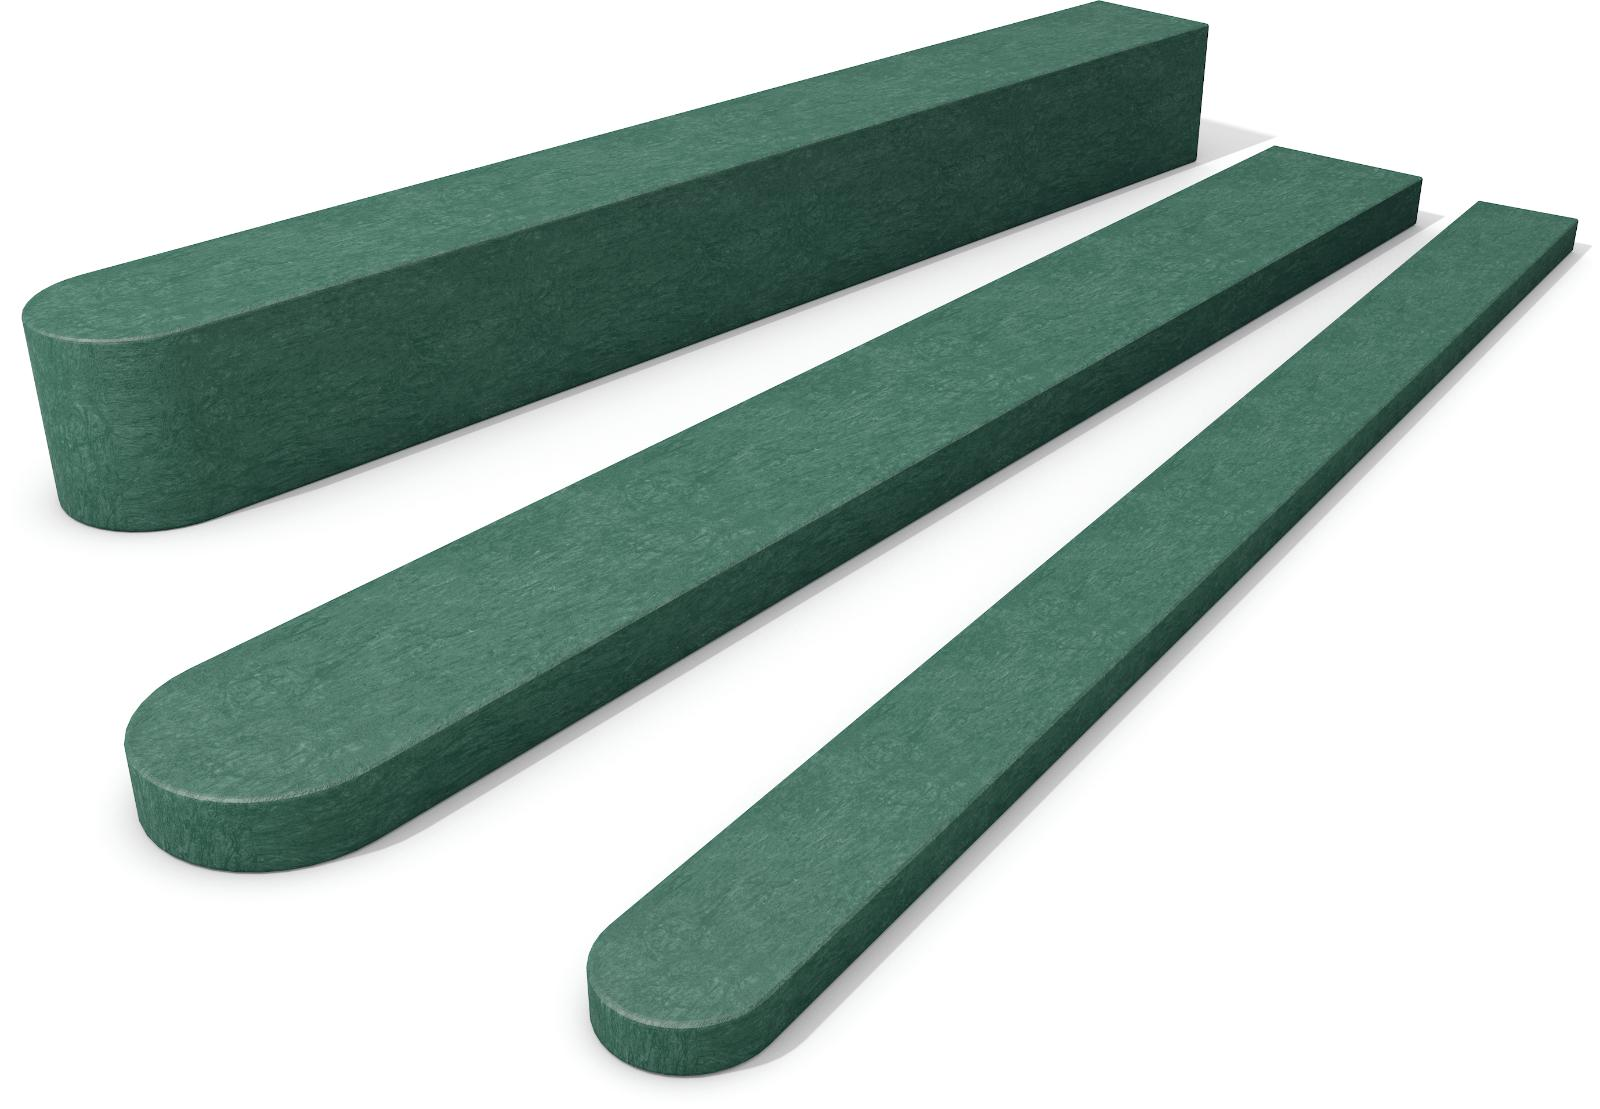 Fence Post with Round End Green 90mm x 90mm x 1250mm